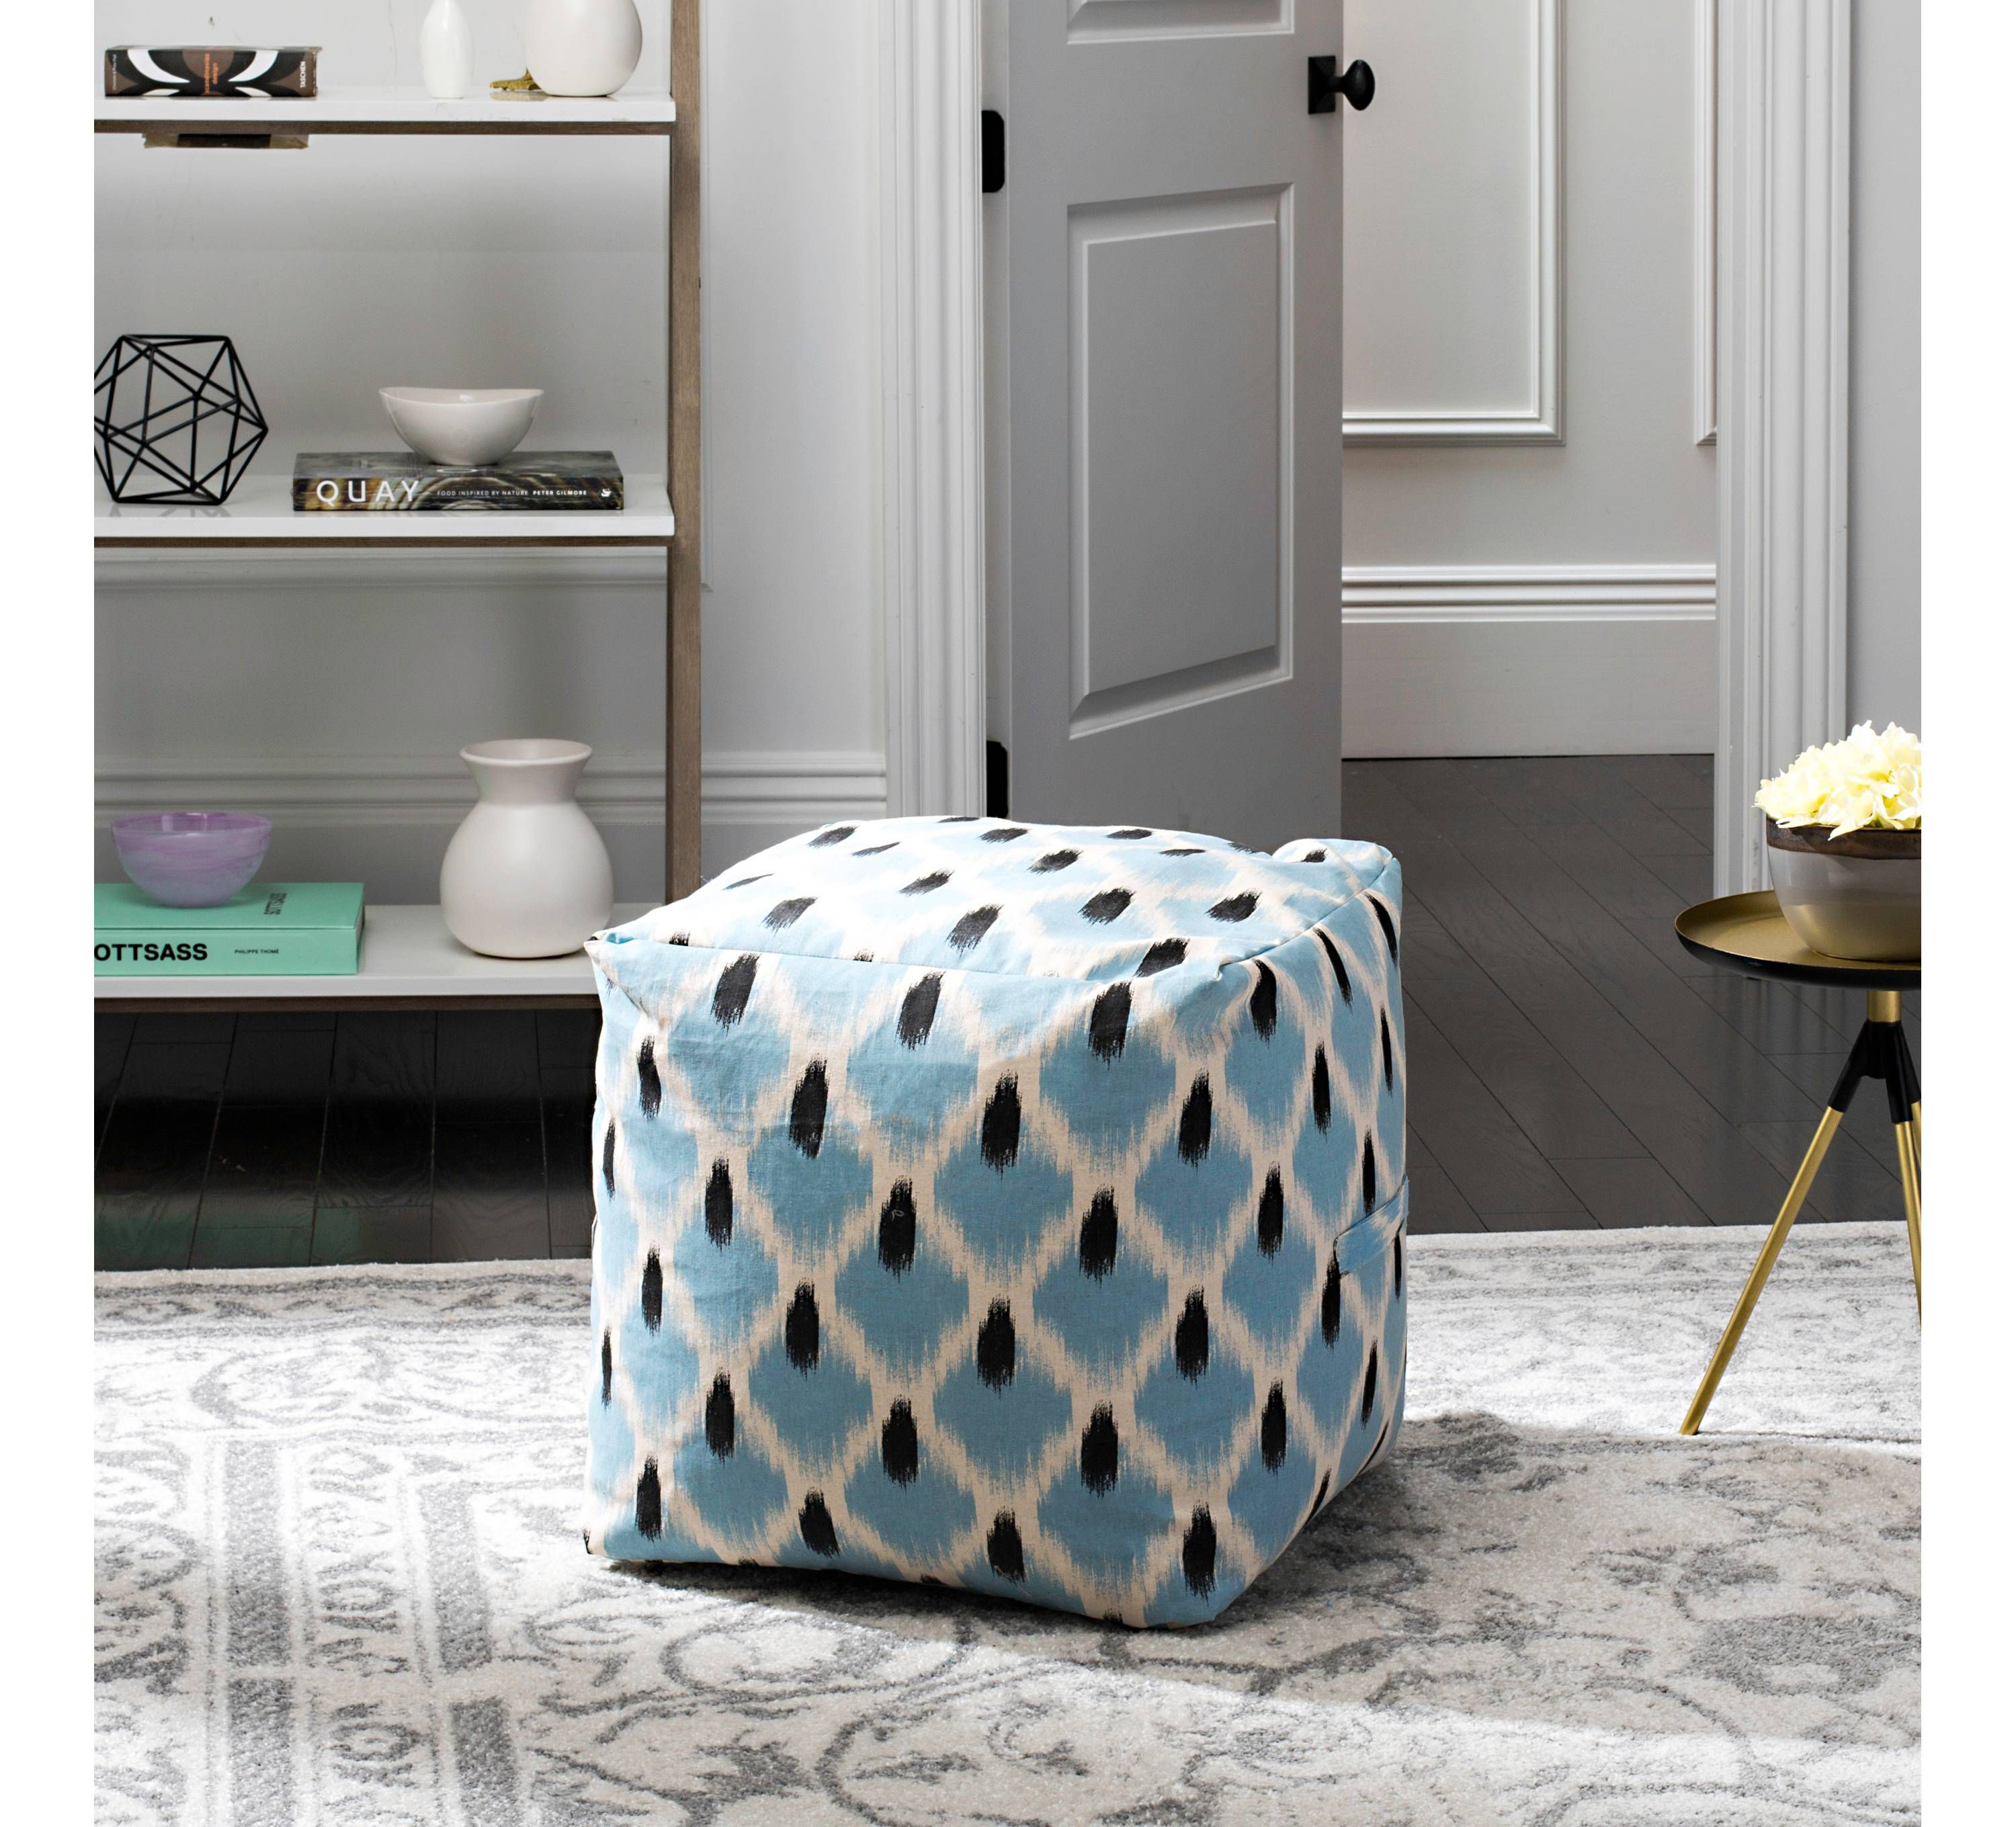 Admirable The 7 Best Poufs For Your Feet Or Seat Of 2019 Creativecarmelina Interior Chair Design Creativecarmelinacom